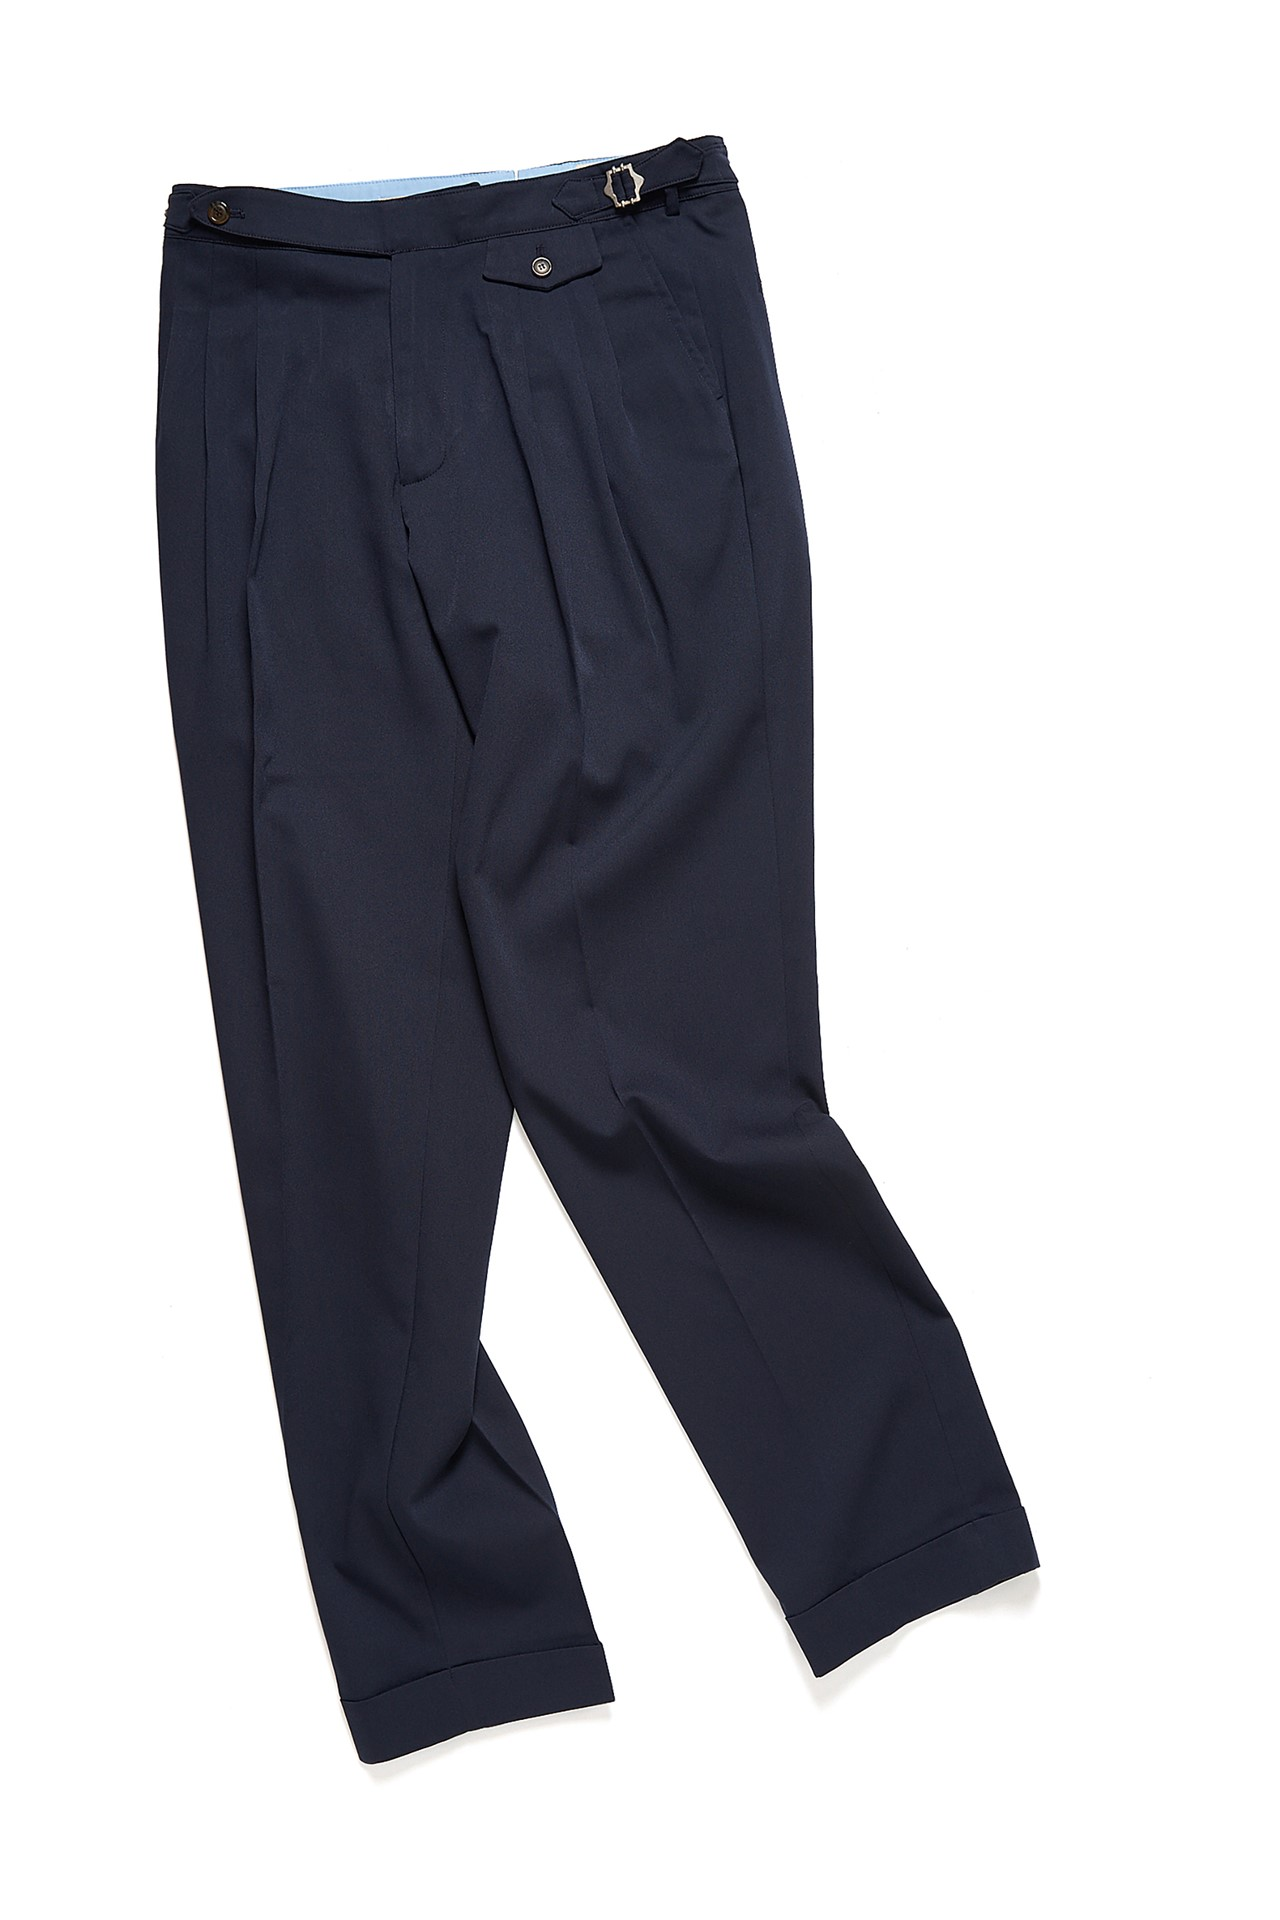 NAVY TR 3 PLEATS PANTSAmfeast(암피스트)